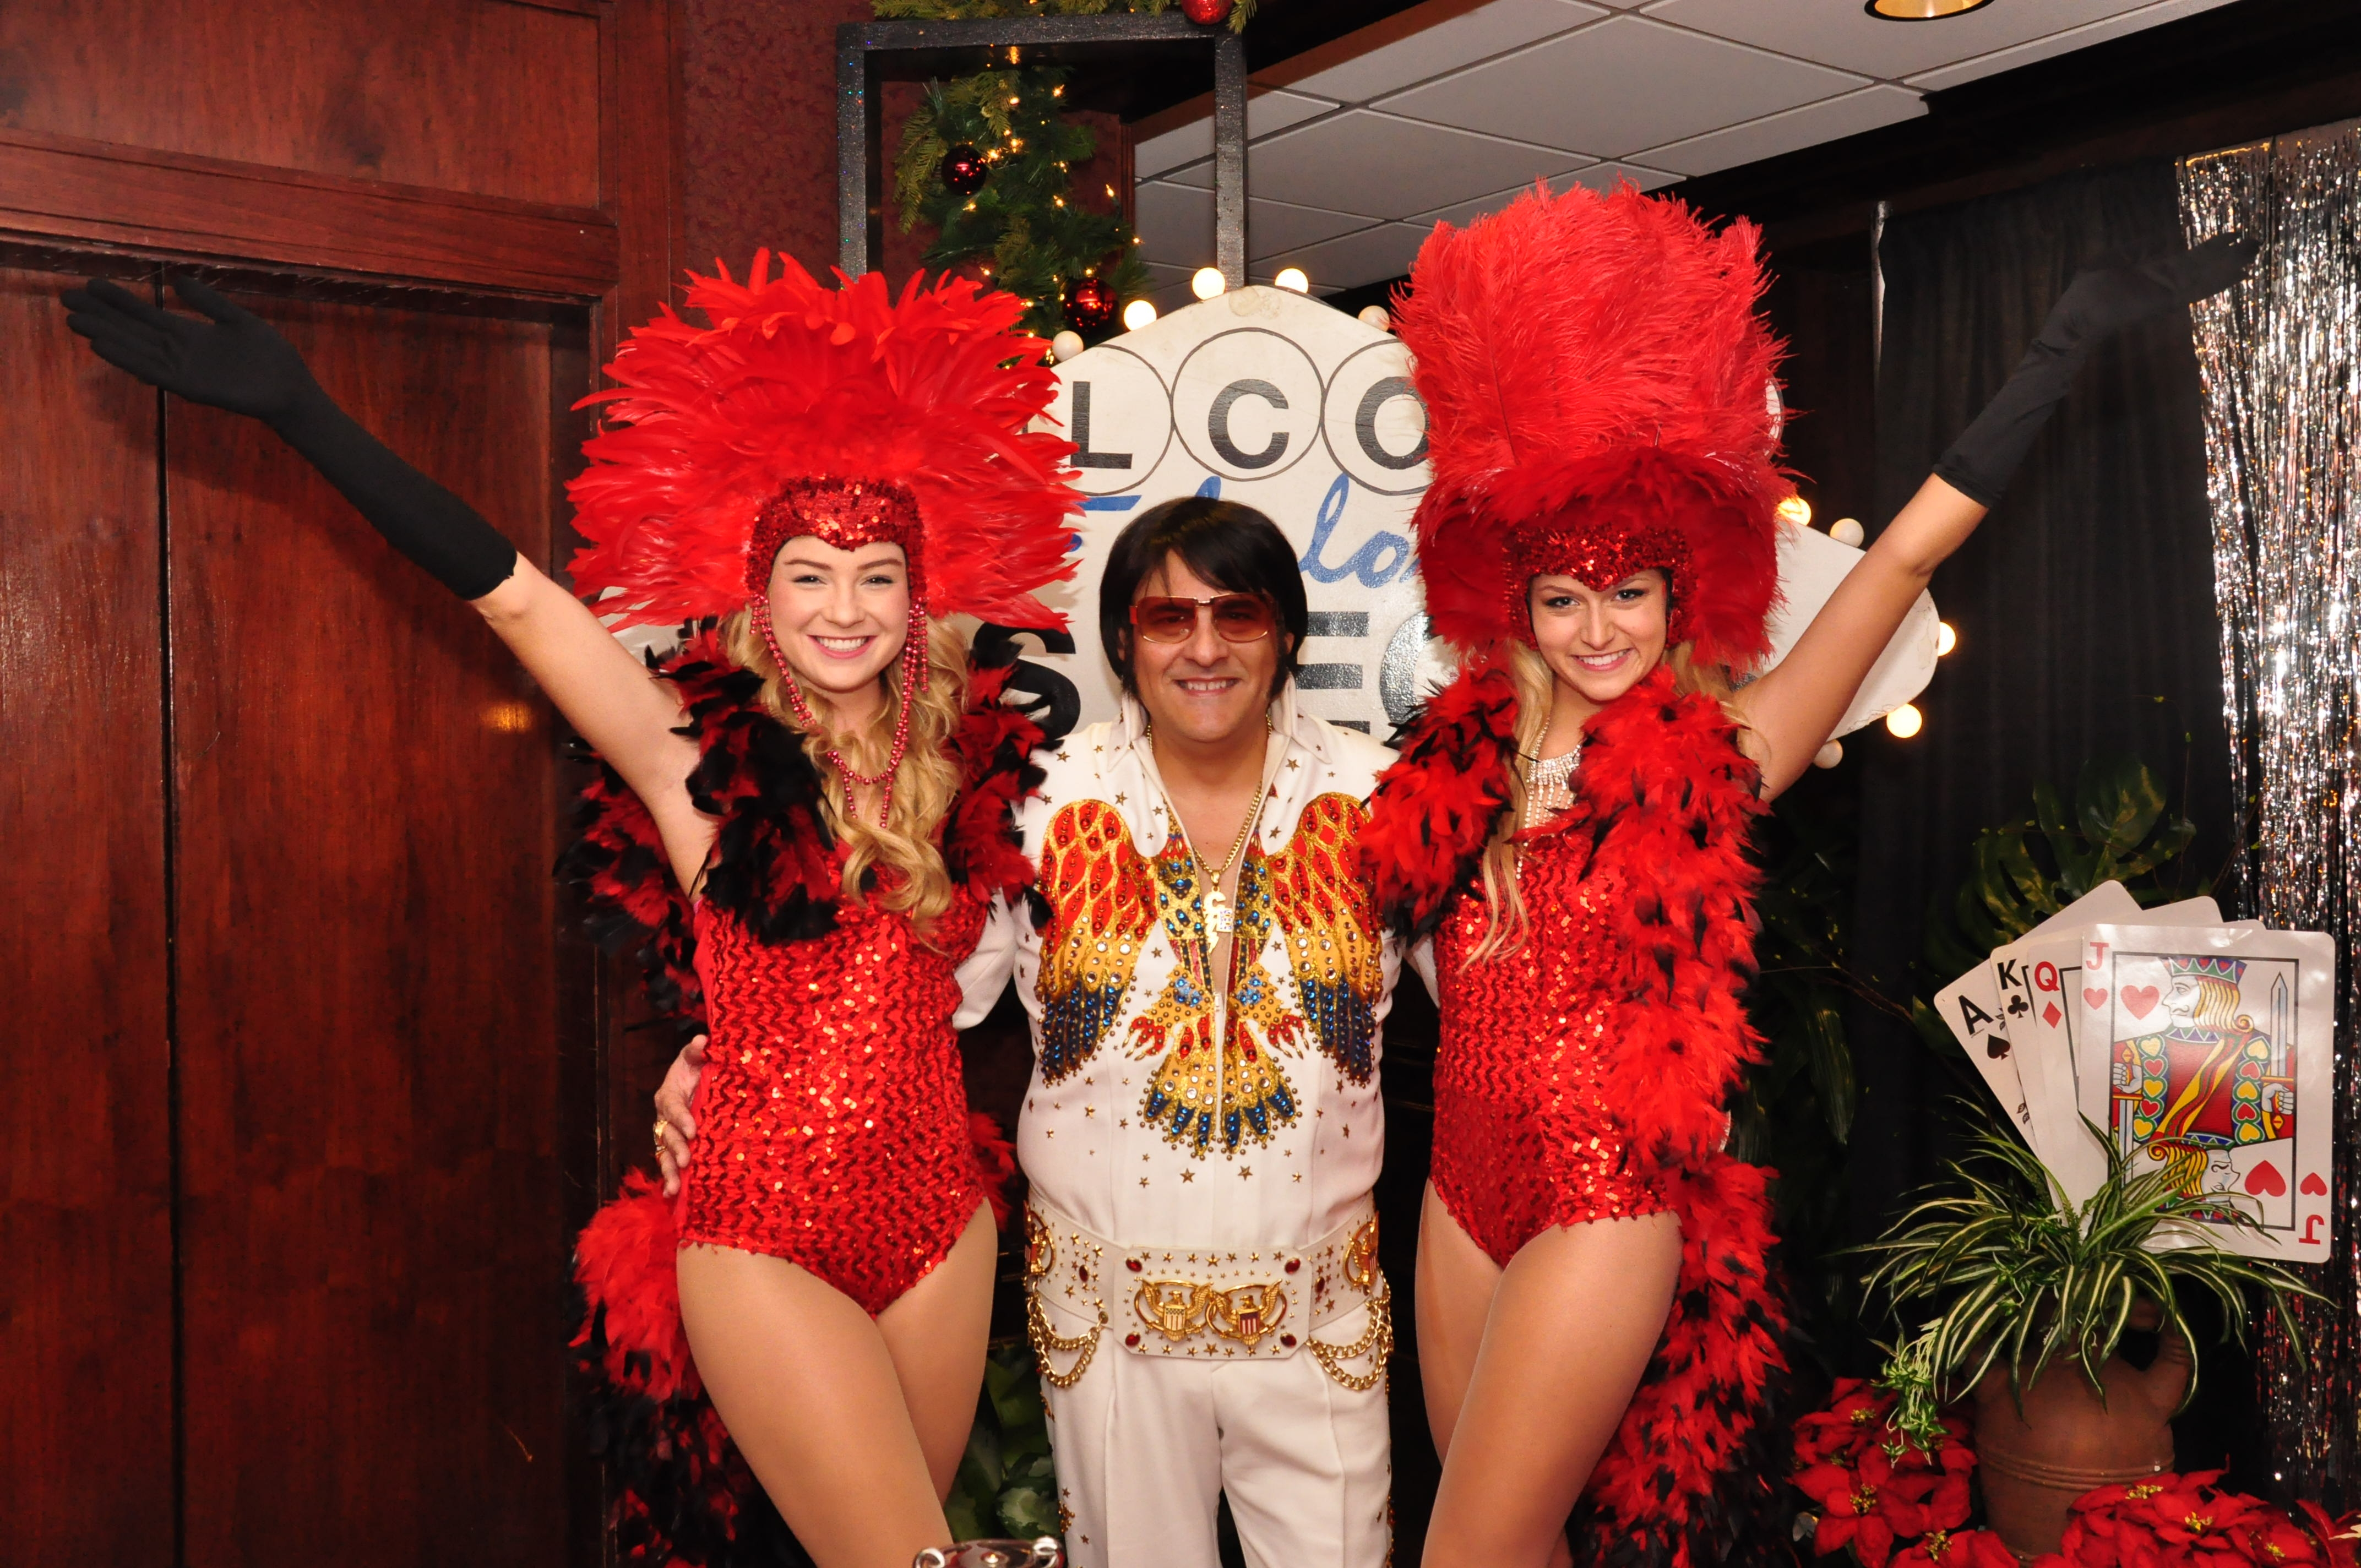 elvis_showgirls.jpg